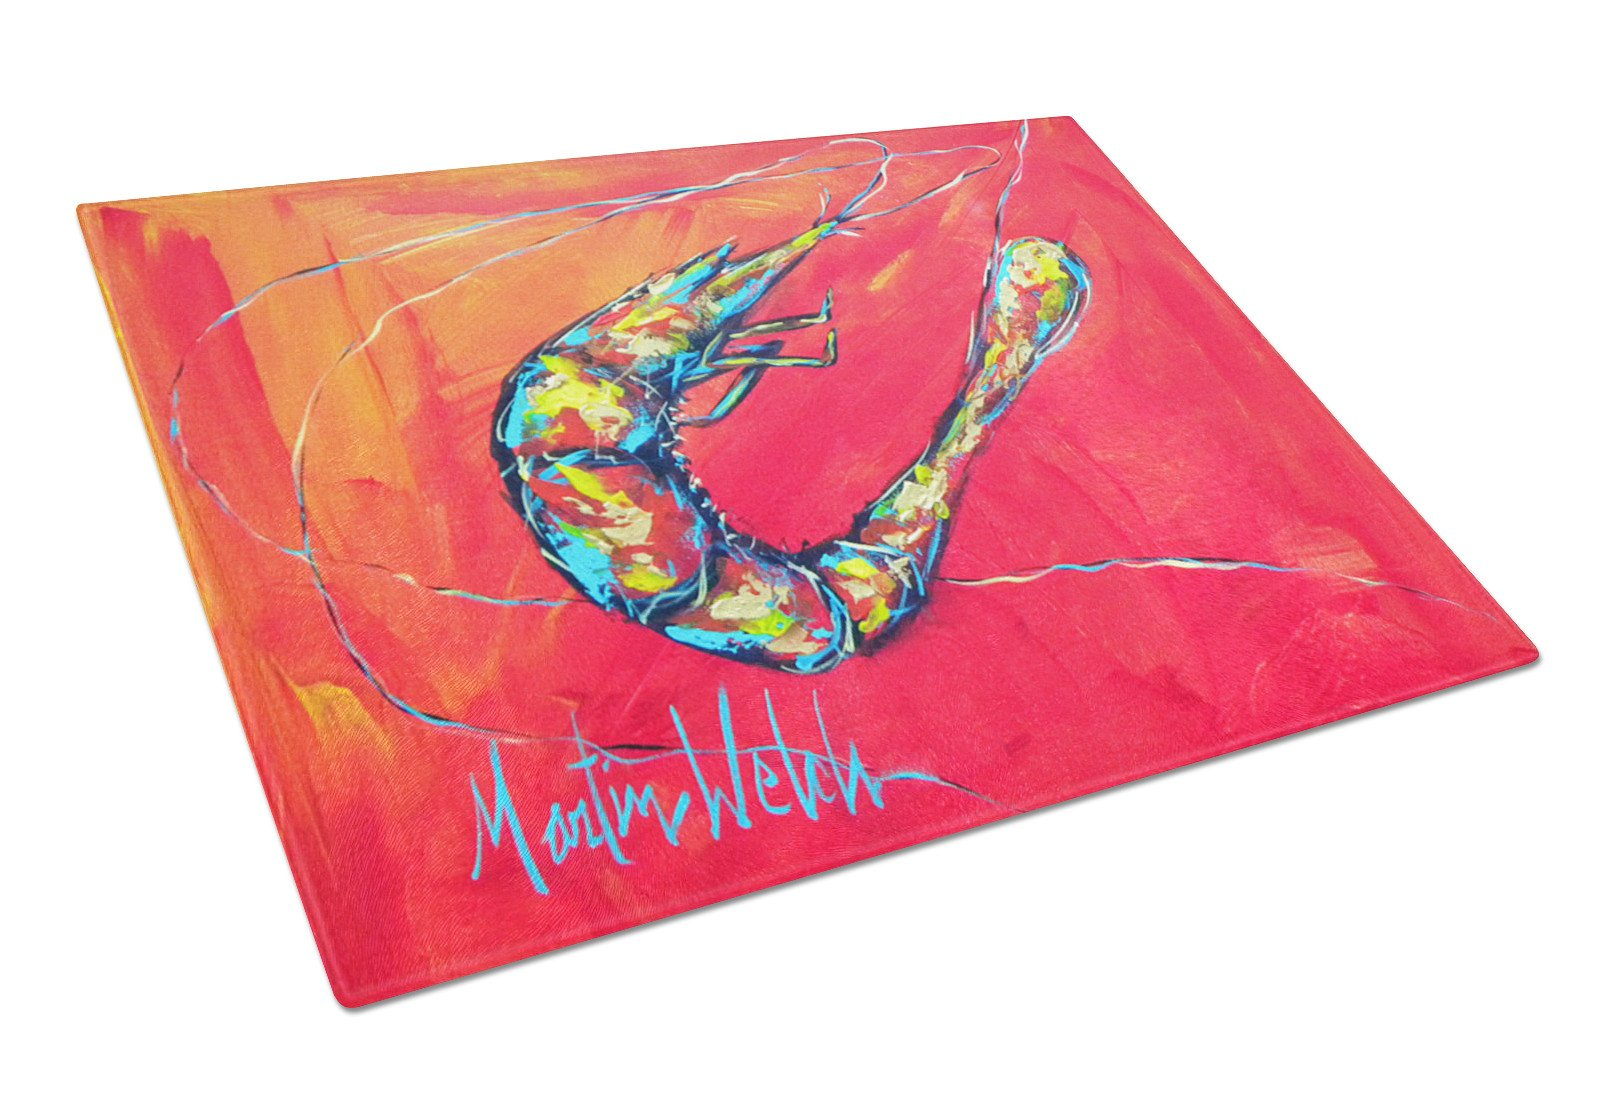 Shrimp Seafood Three Glass Cutting Board Large by Caroline's Treasures